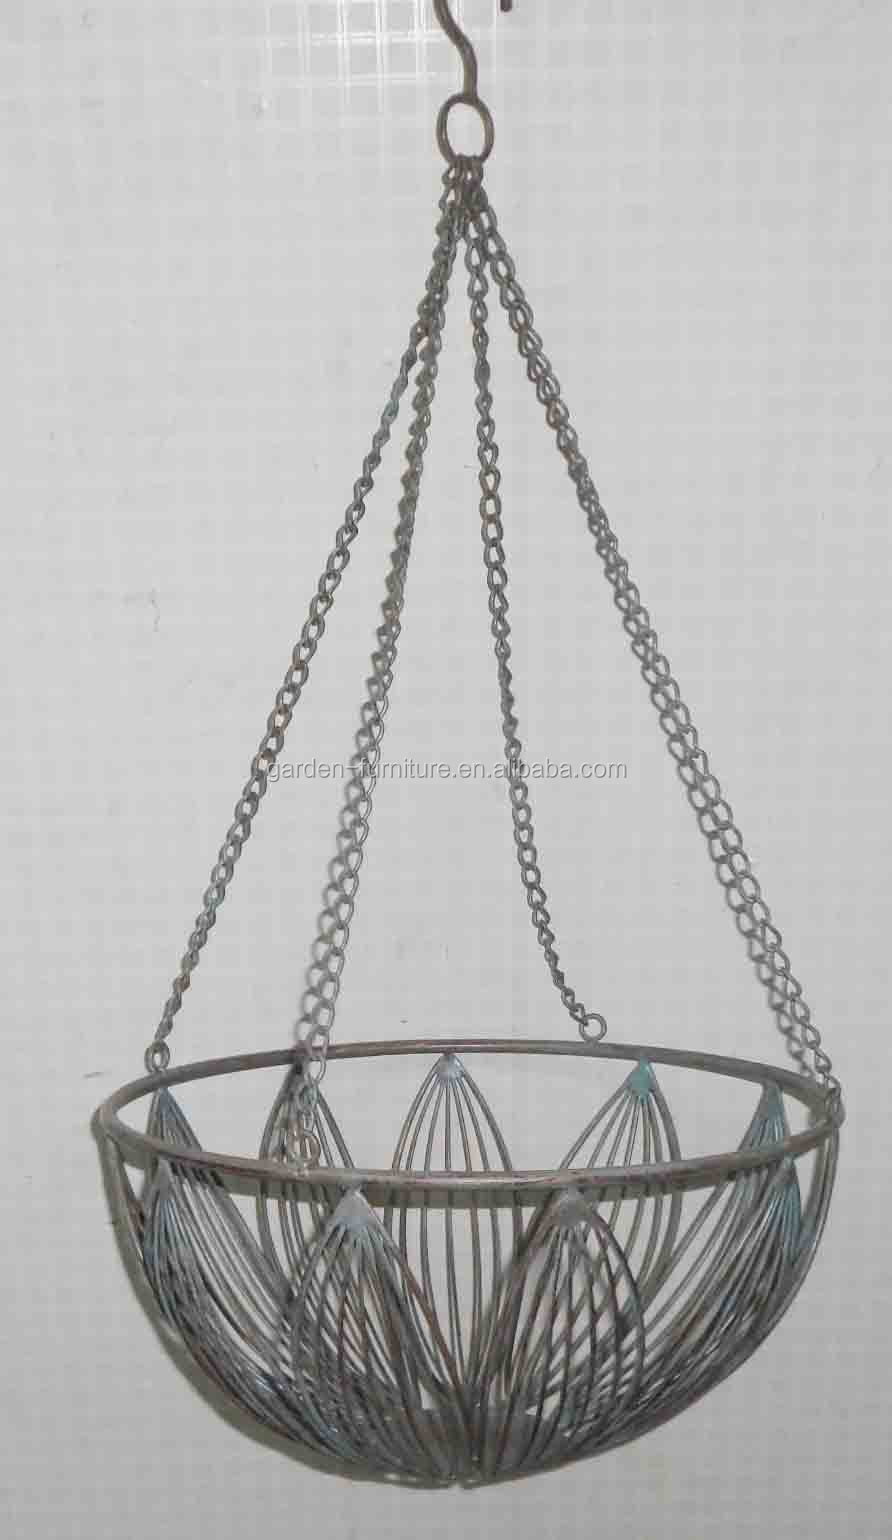 Wholesale Garden Planter Holders Handicraft Antique